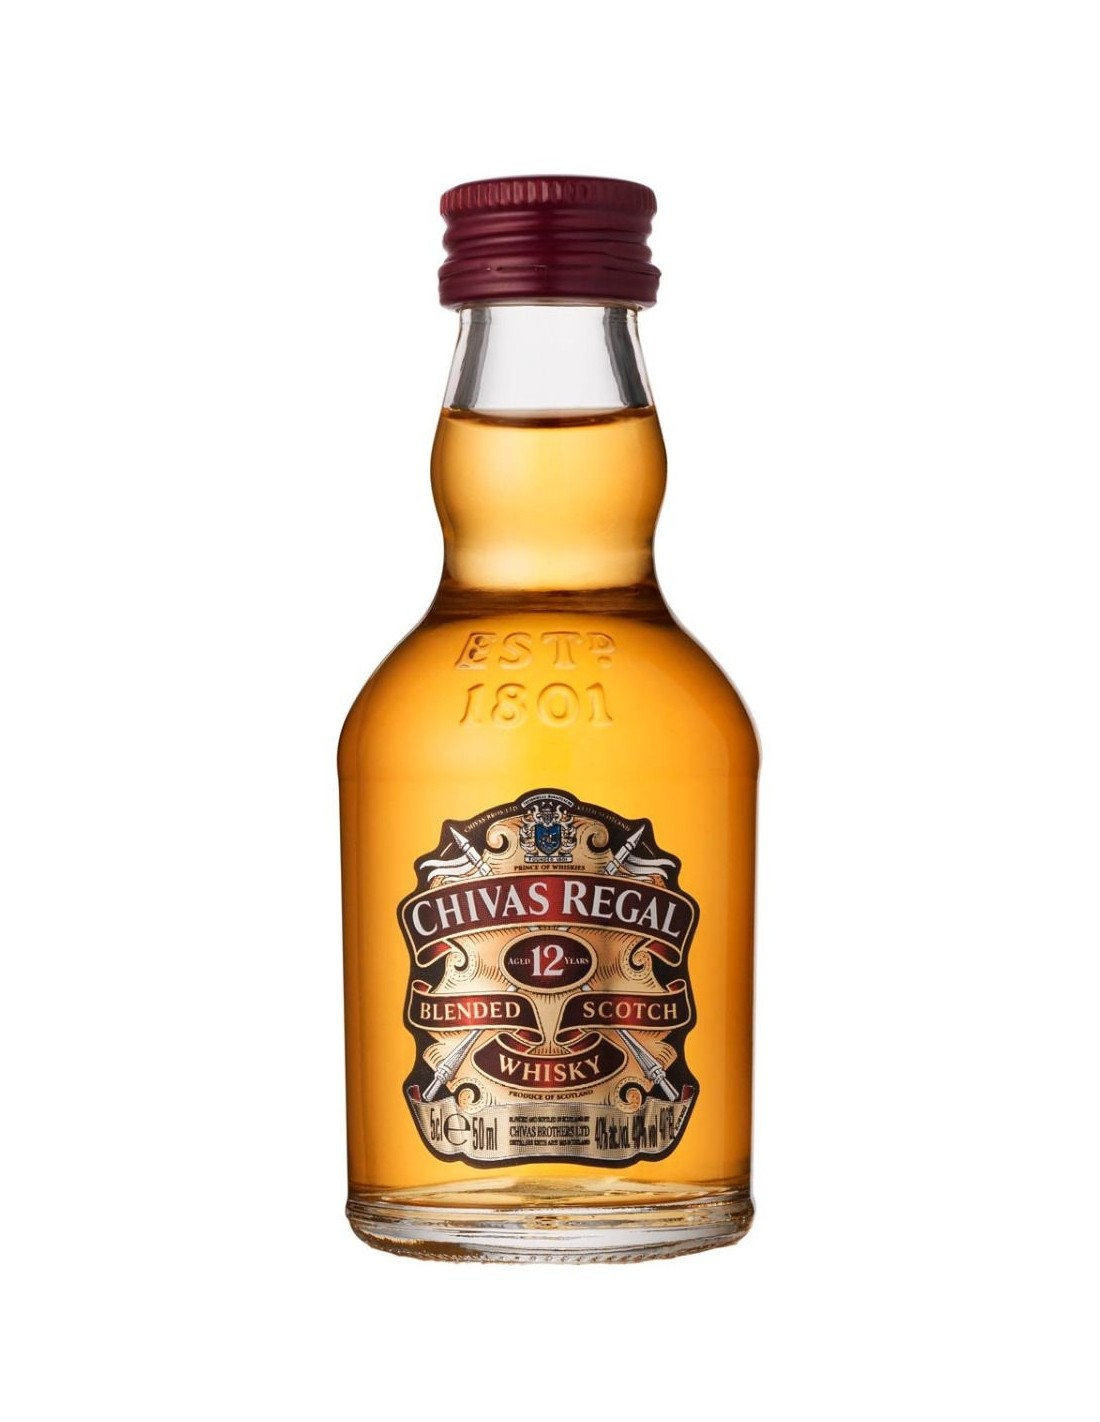 Whisky Chivas Regal, 12 ani, 40% alc., 0.05L, Scotia